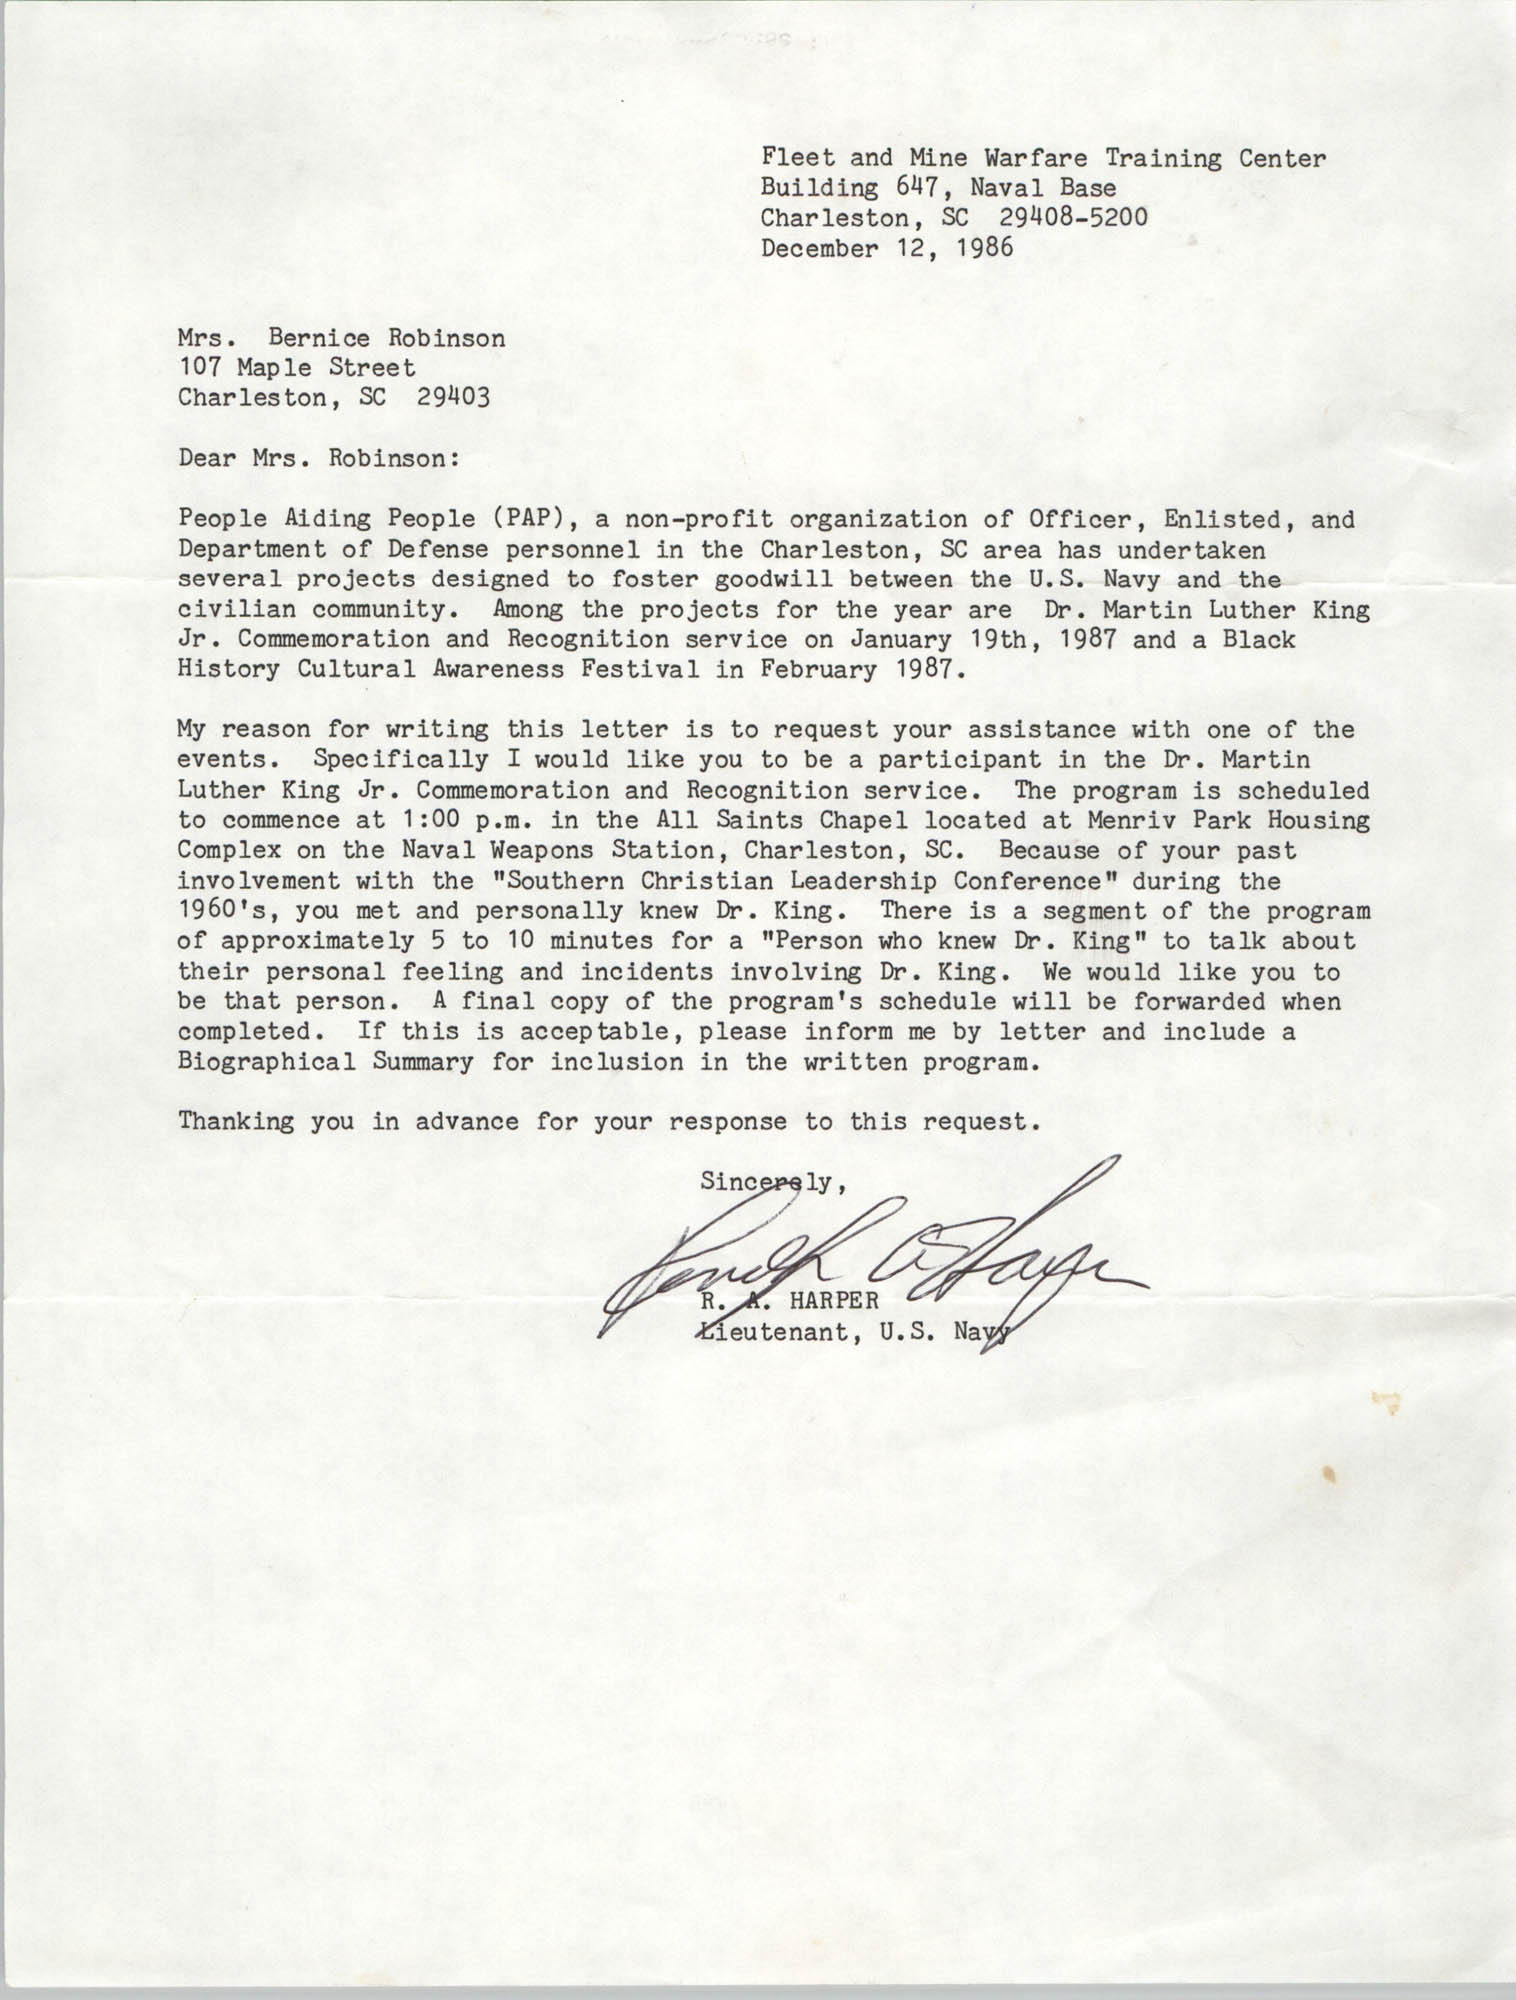 Letter from R. A. Harper to Bernice Robinson, December 12, 1986